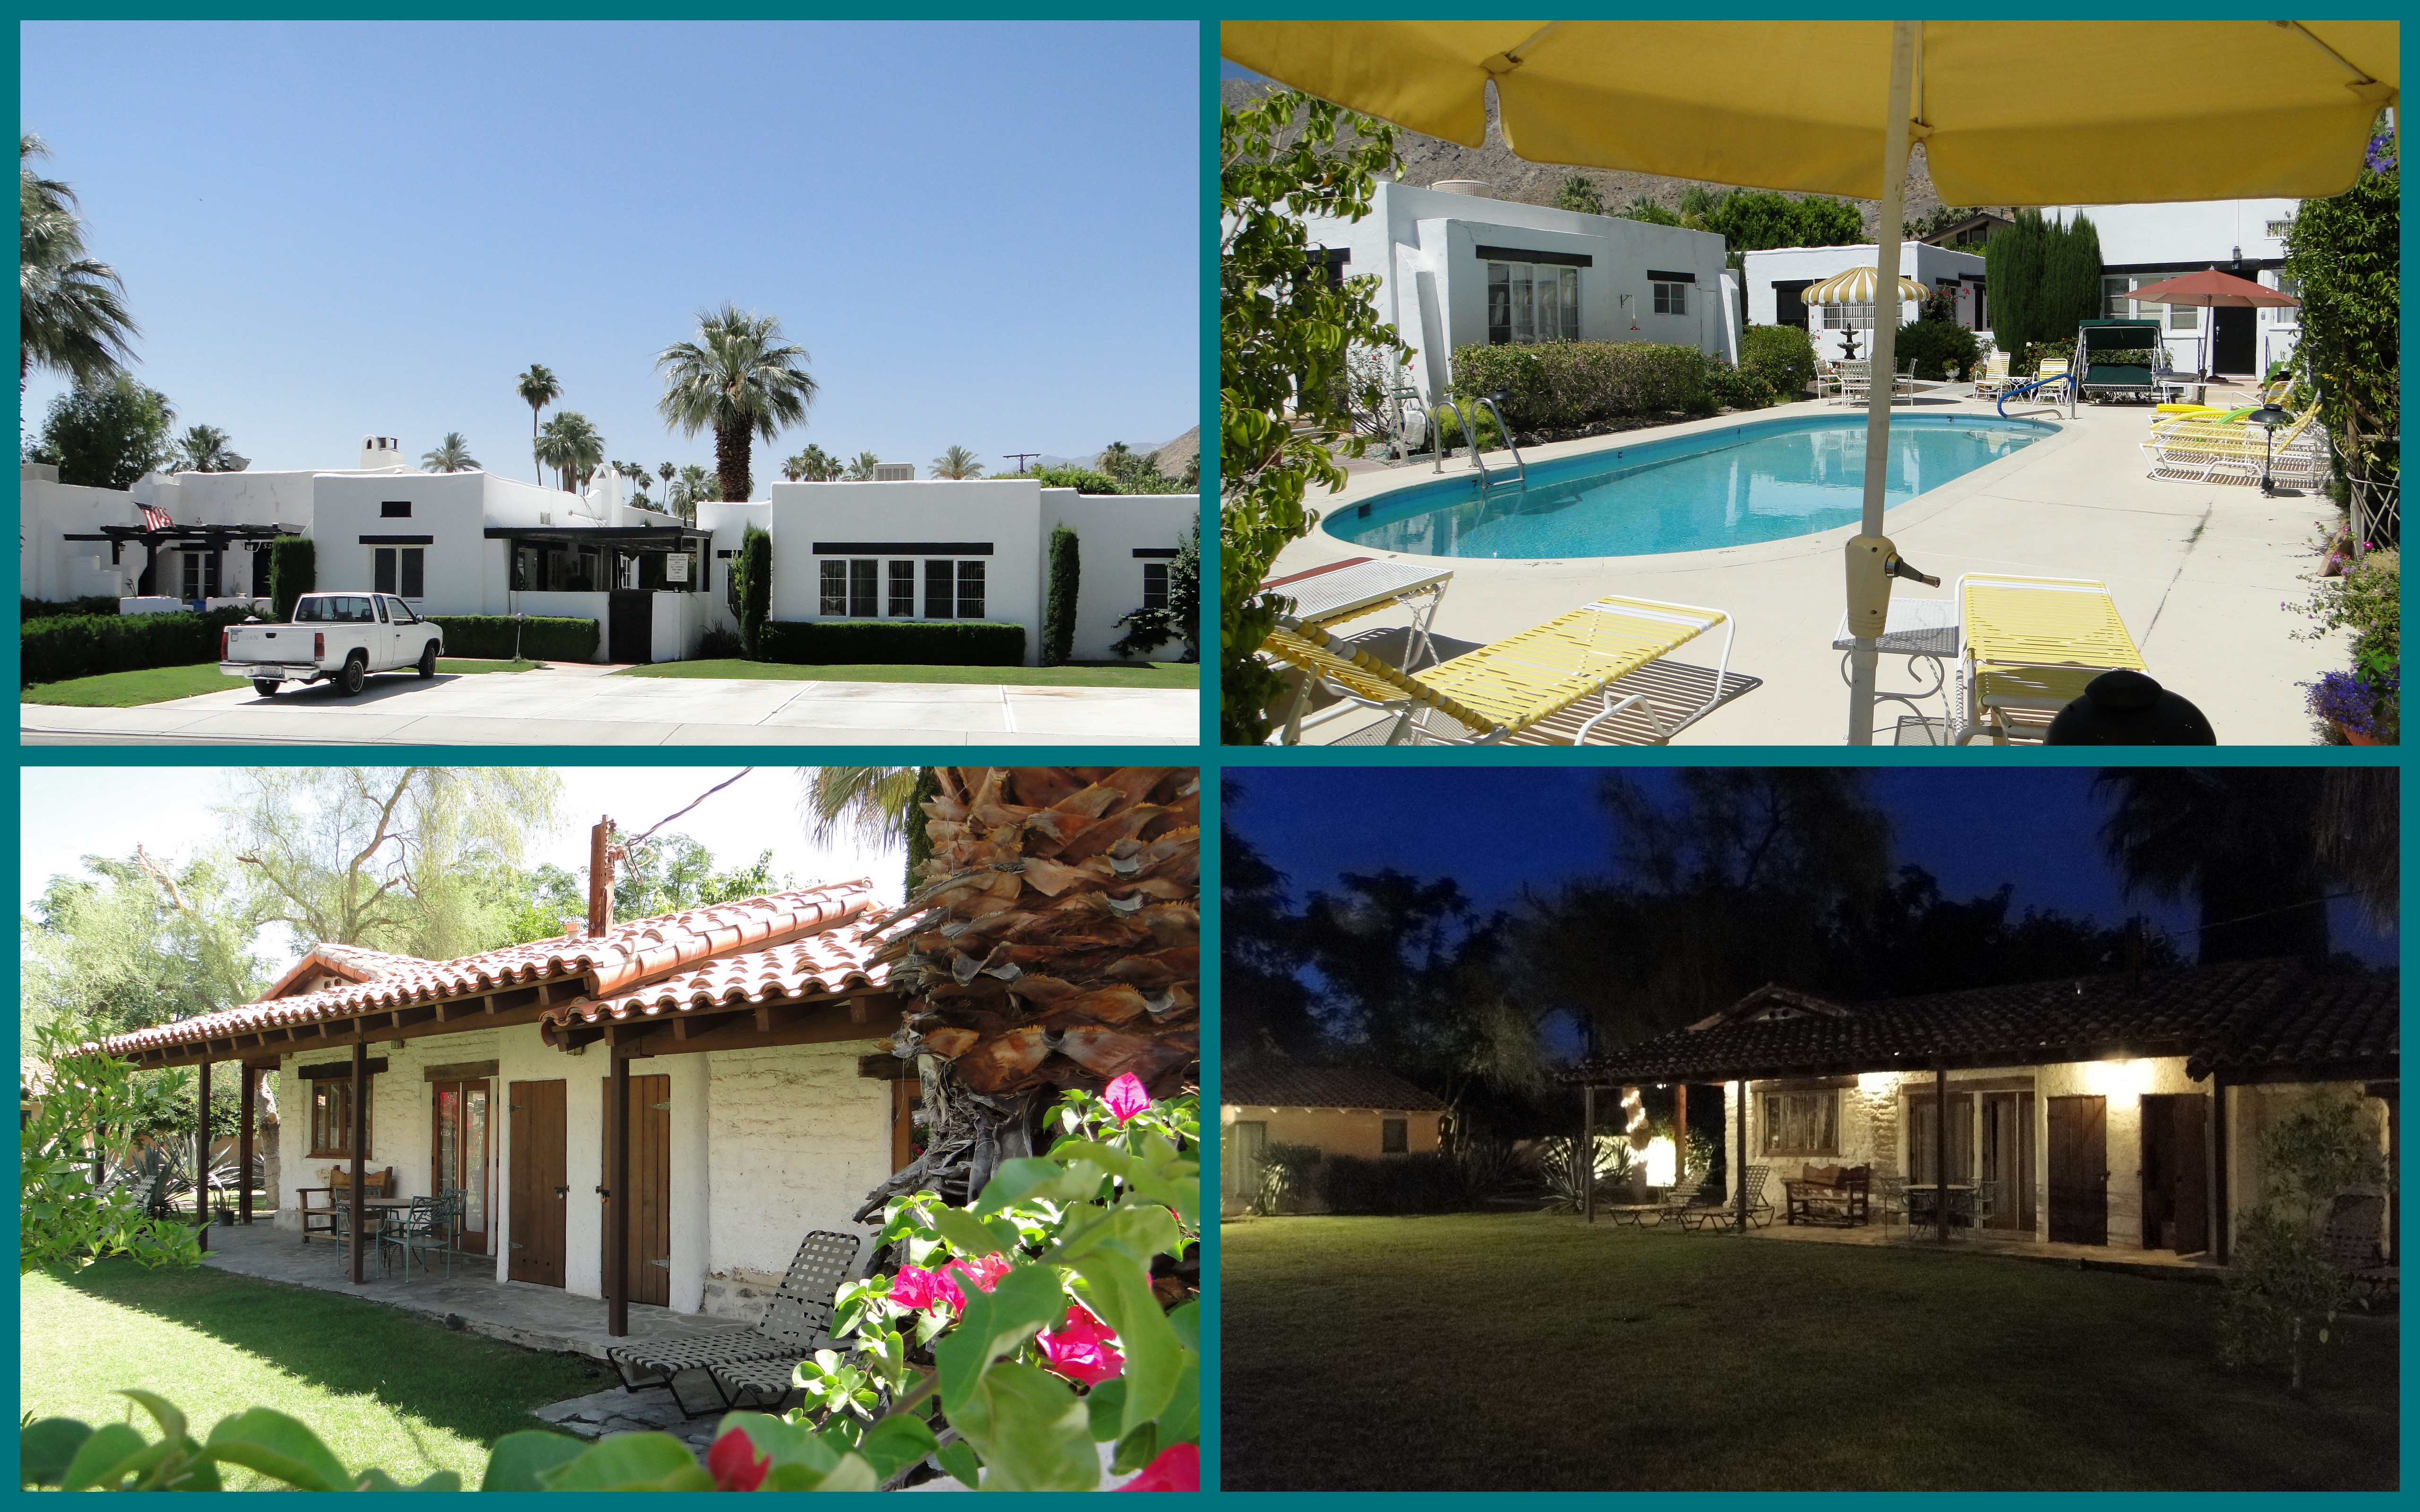 Lucille Ball House Palm Springs Images | TheCelebrityPix